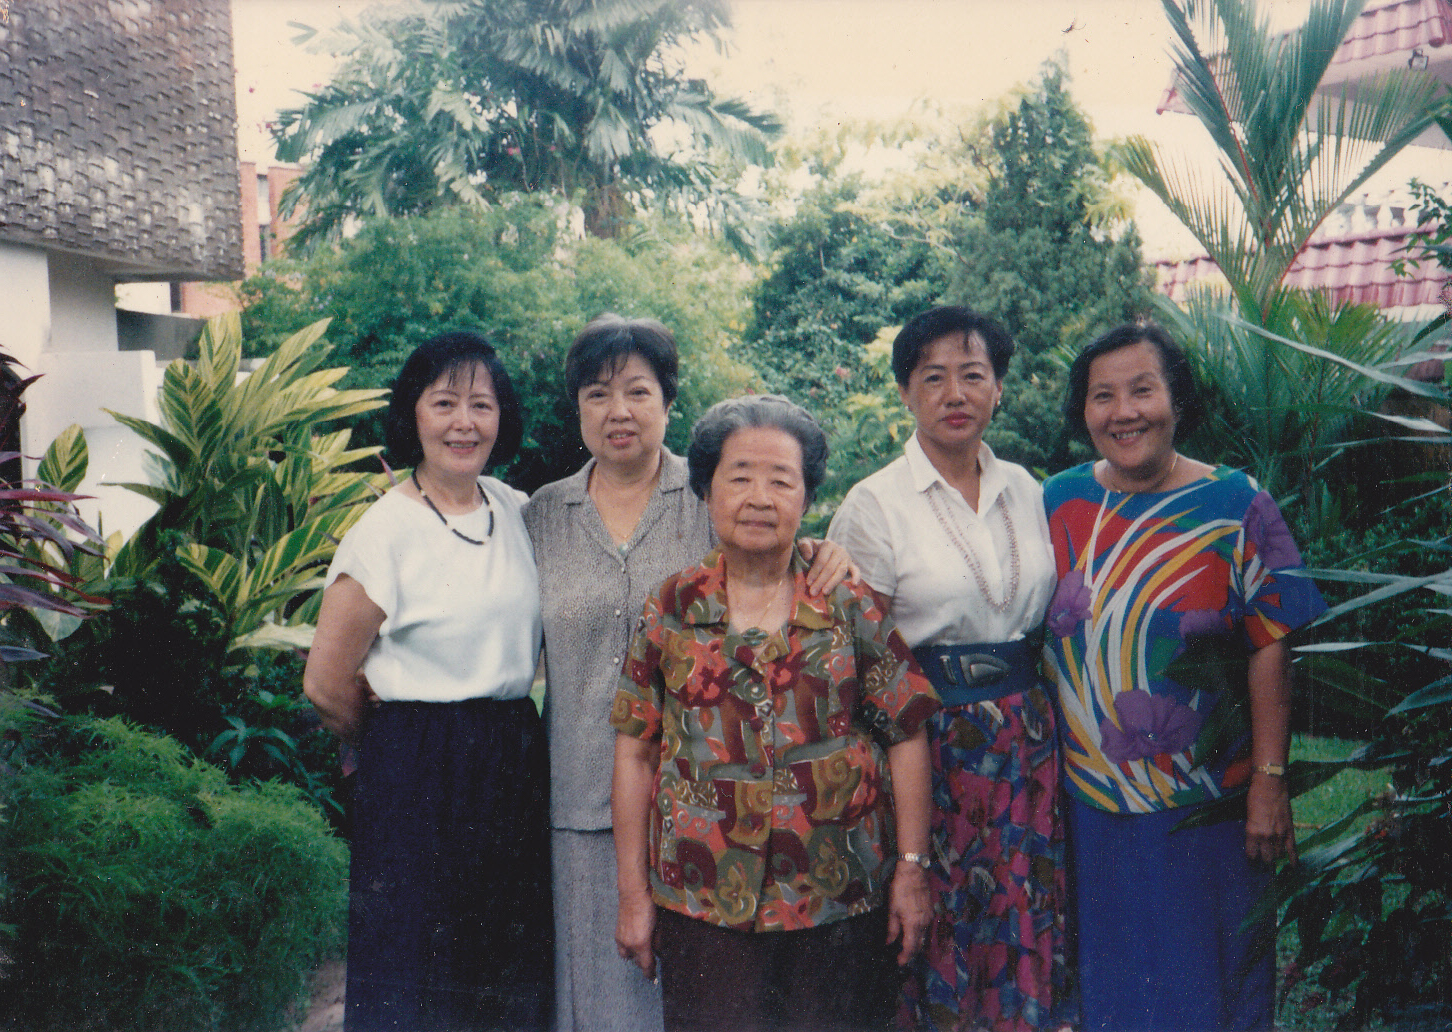 Ginny (second from right) mingled with Singapore's most influential elites. At the centre of the picture is Singapore's President Tony Tan's mother.